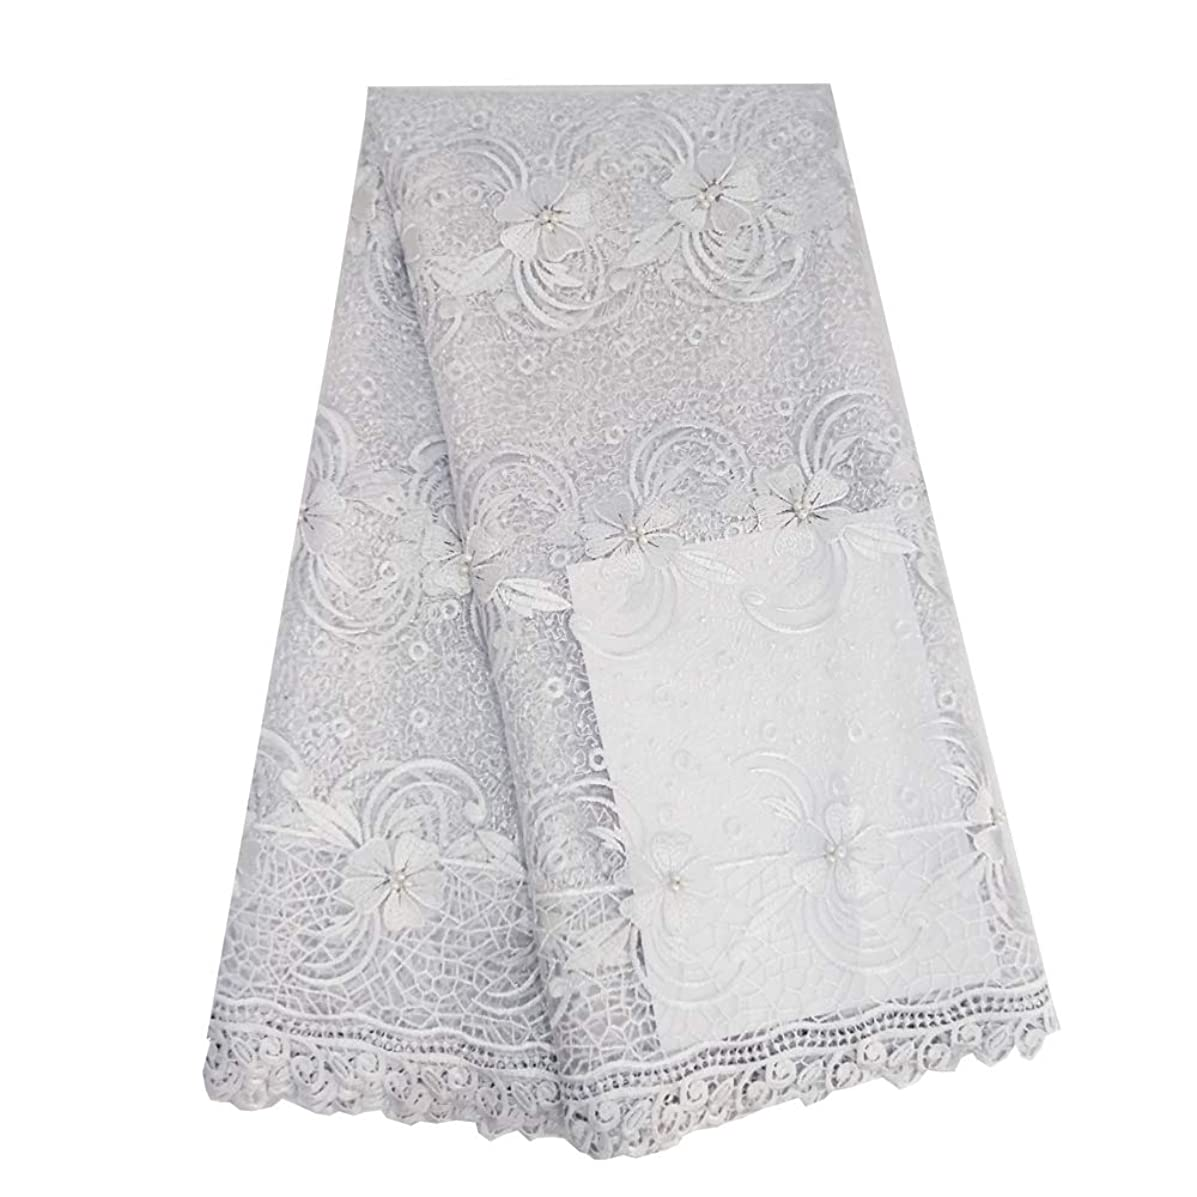 pqdaysun African Lace Fabric Nigerian French Lace Gurpure Lace Net Fabric Embroidered Fabric for Wedding Party F50763 (White, 5 Yards)